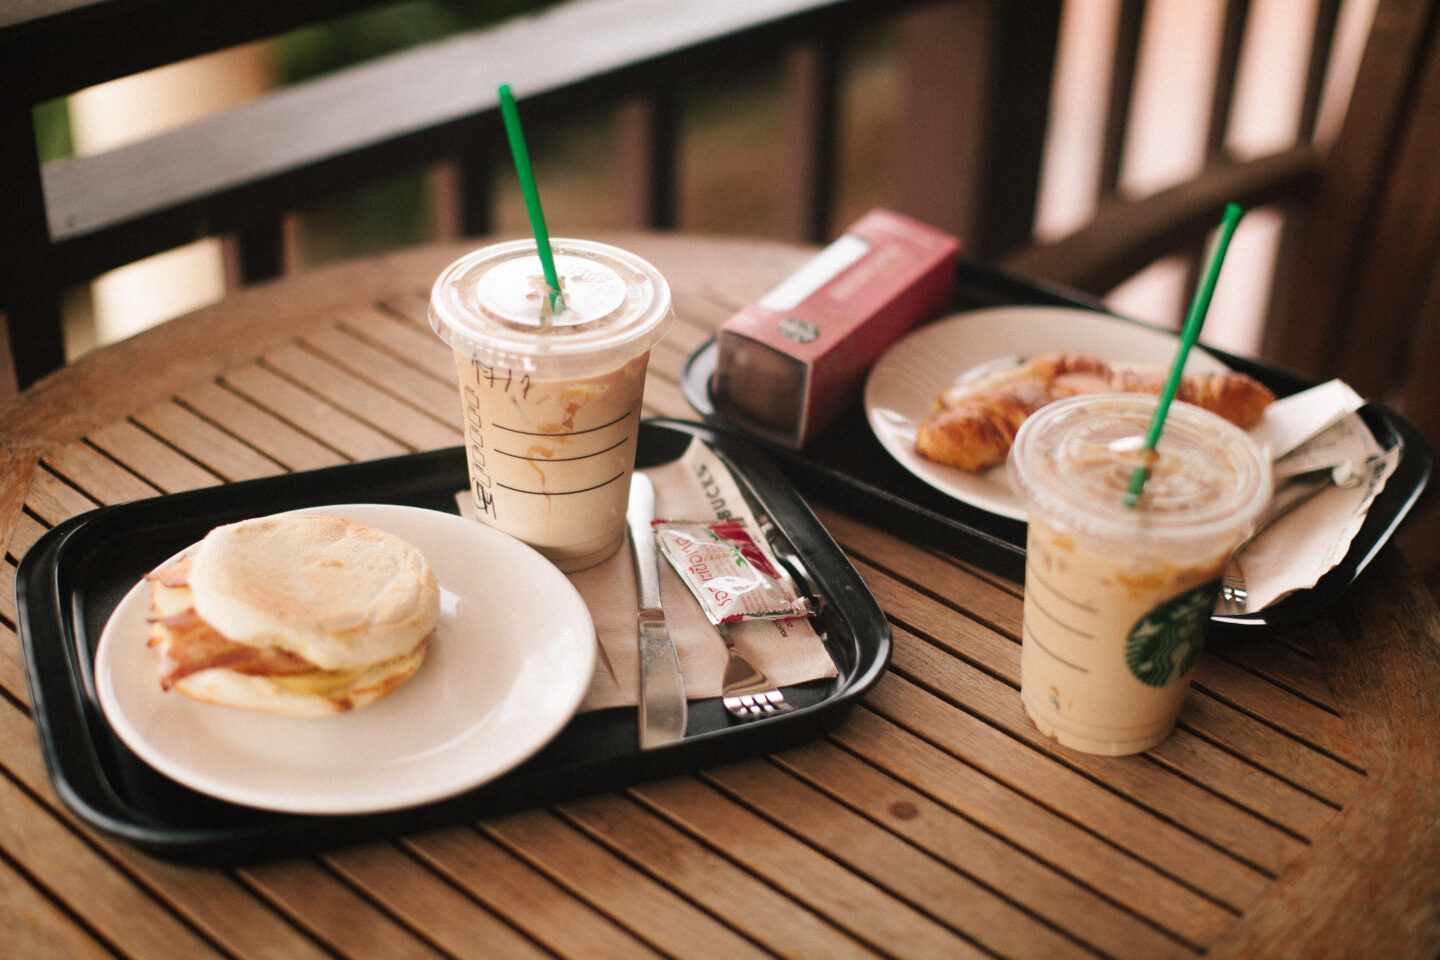 Drinks and food on a table at starbucks